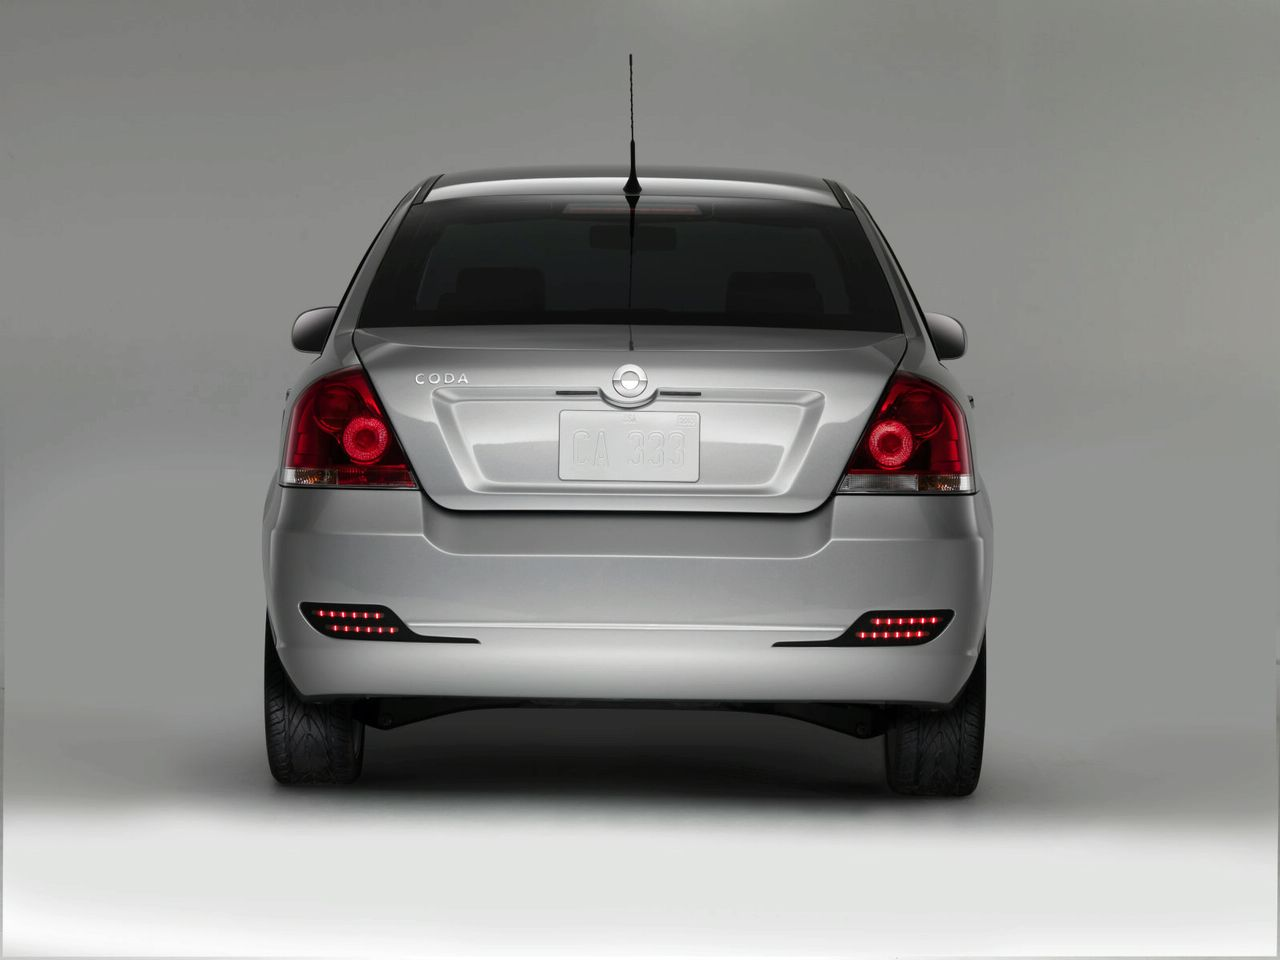 2010 Coda EV Rear View